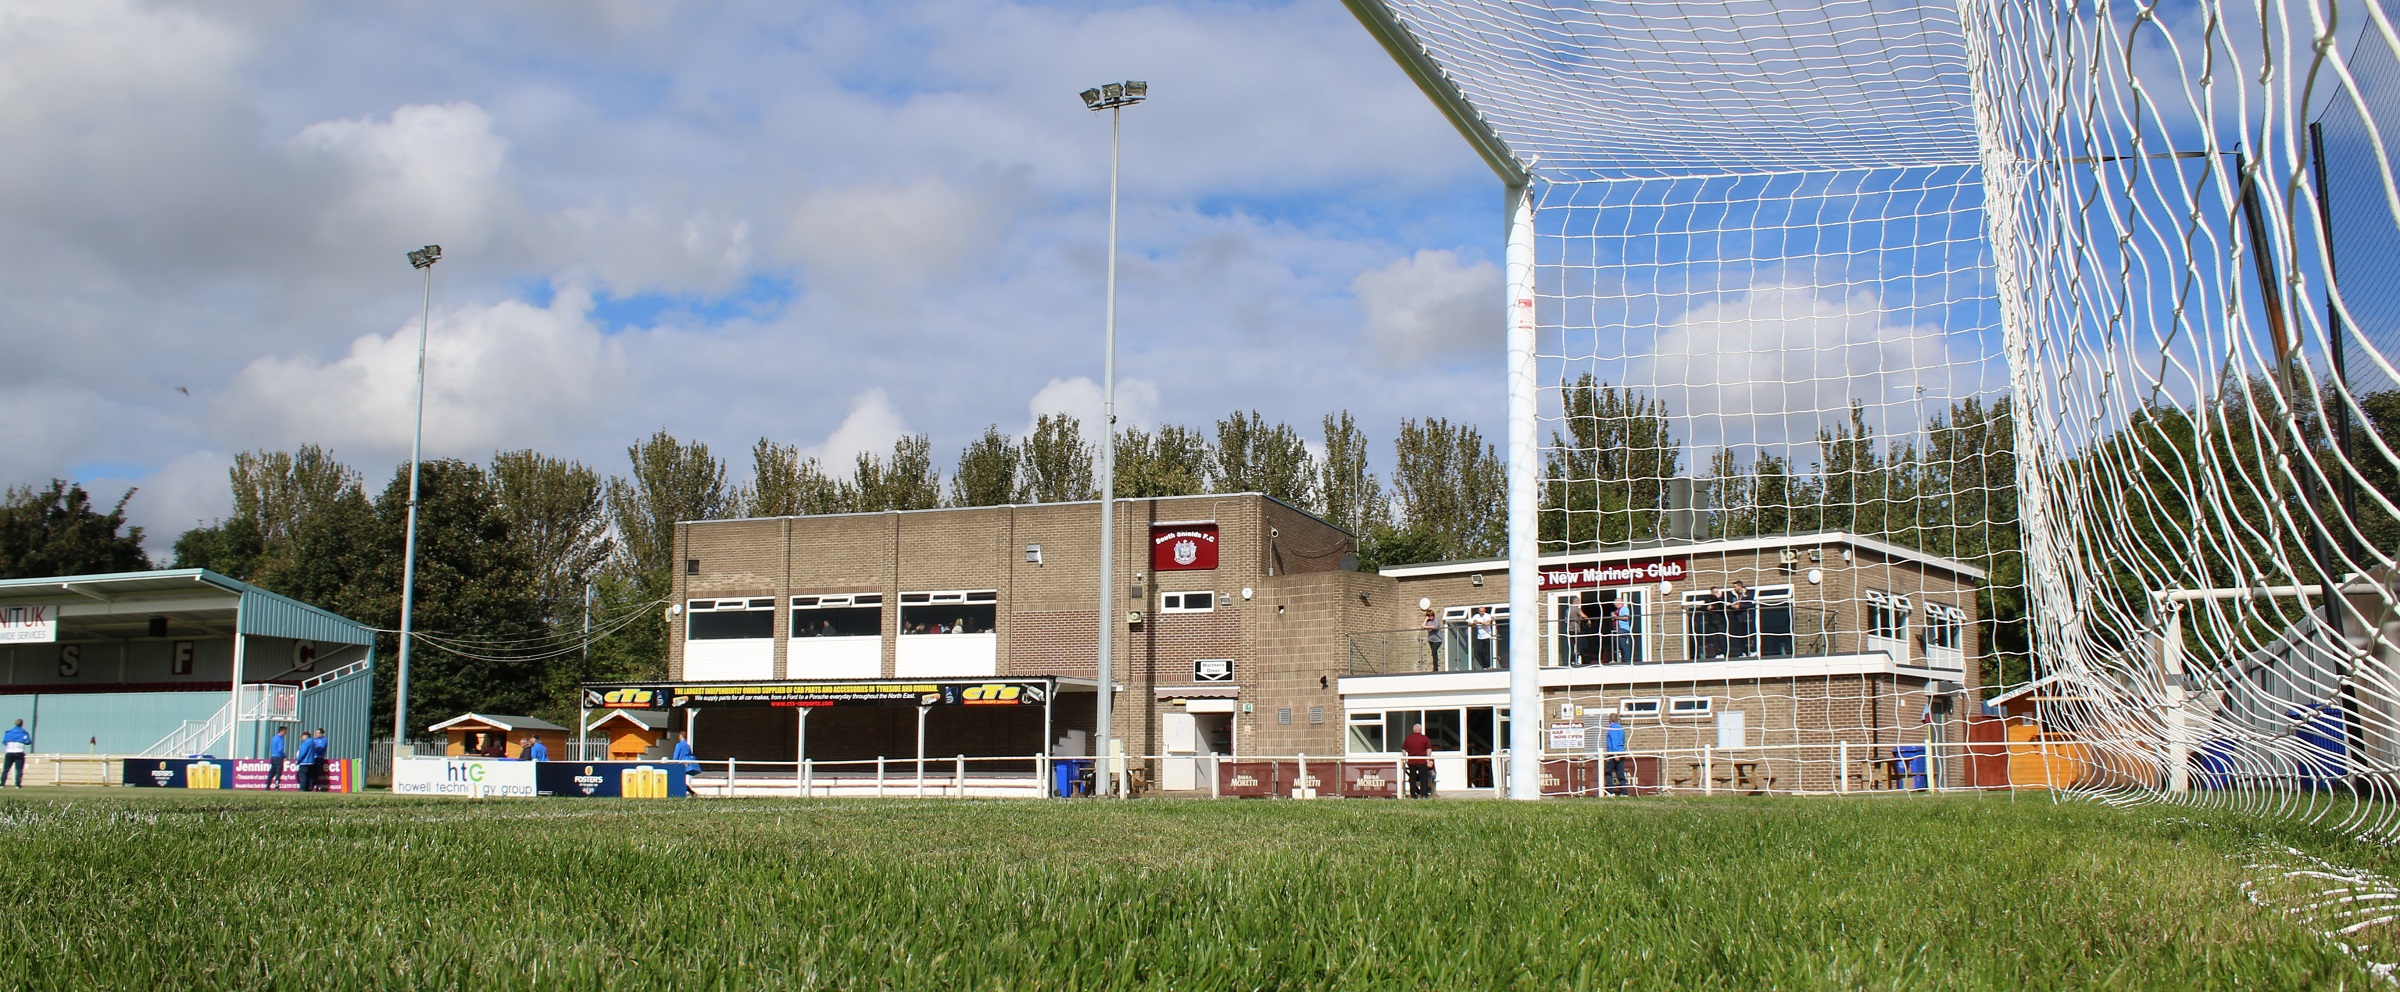 Club Statement: The restaurant at Mariners Park